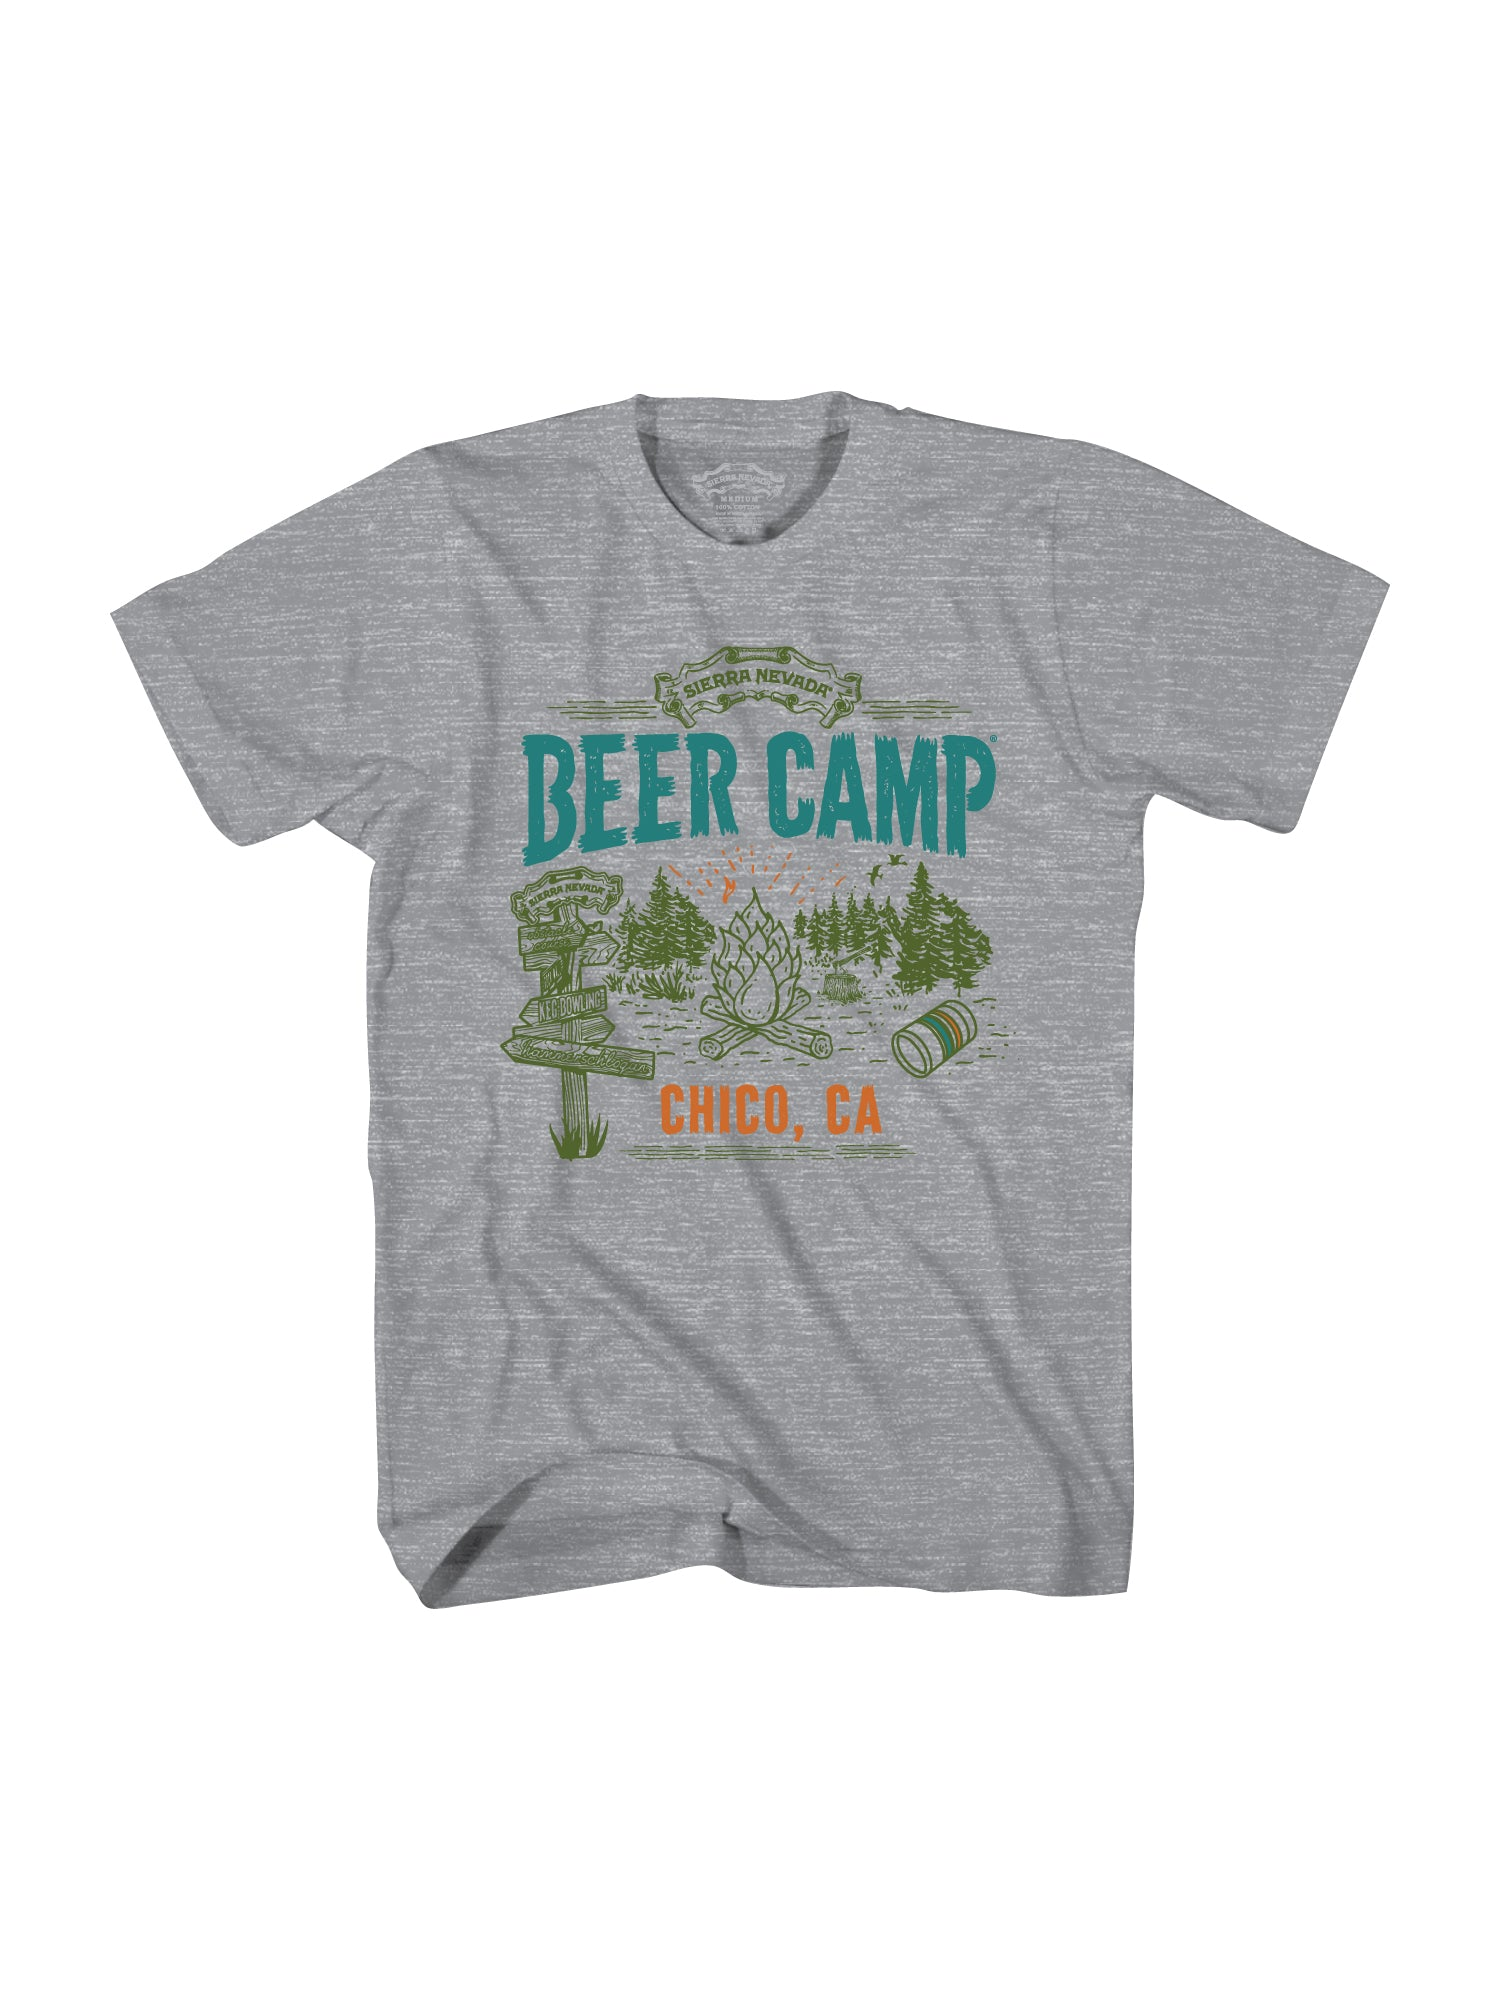 BEER CAMP S/S TSHIRT- HEATHER GREY - Anderson Bros Design and Supply